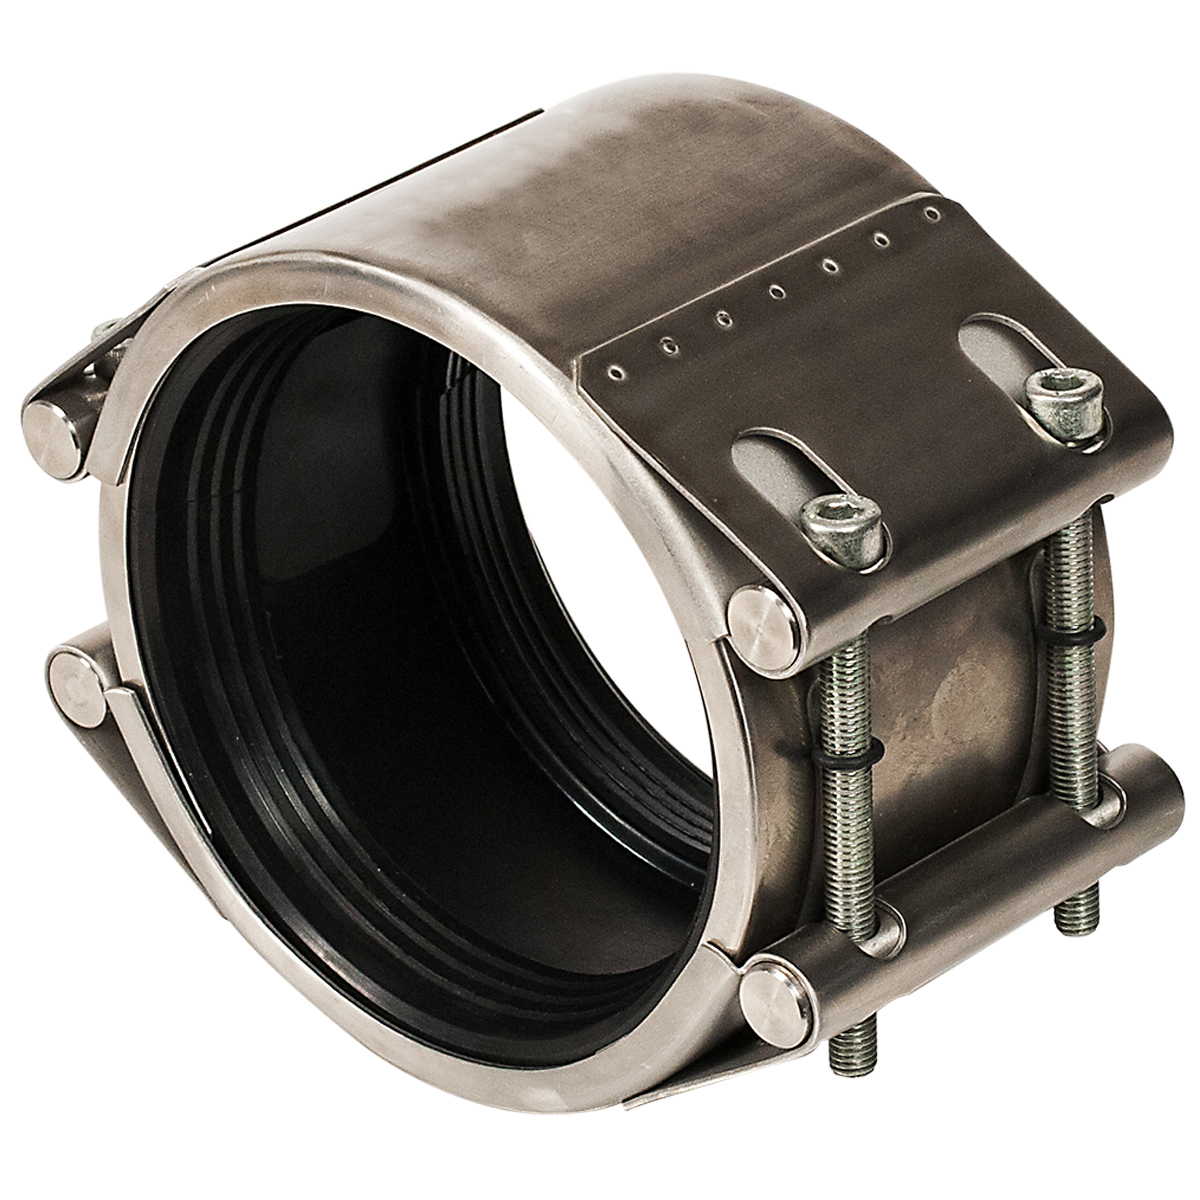 ARMOR SEAL - Stainless steel pipe repair clamp with hydrostatic gasket.Nominal Sizes4 - 24 inchesWorking PressureSee catalog pagePipe CompatibilitySteel, cast iron, ductile iron, asbestos cement, concrete,  PVC, HDPE